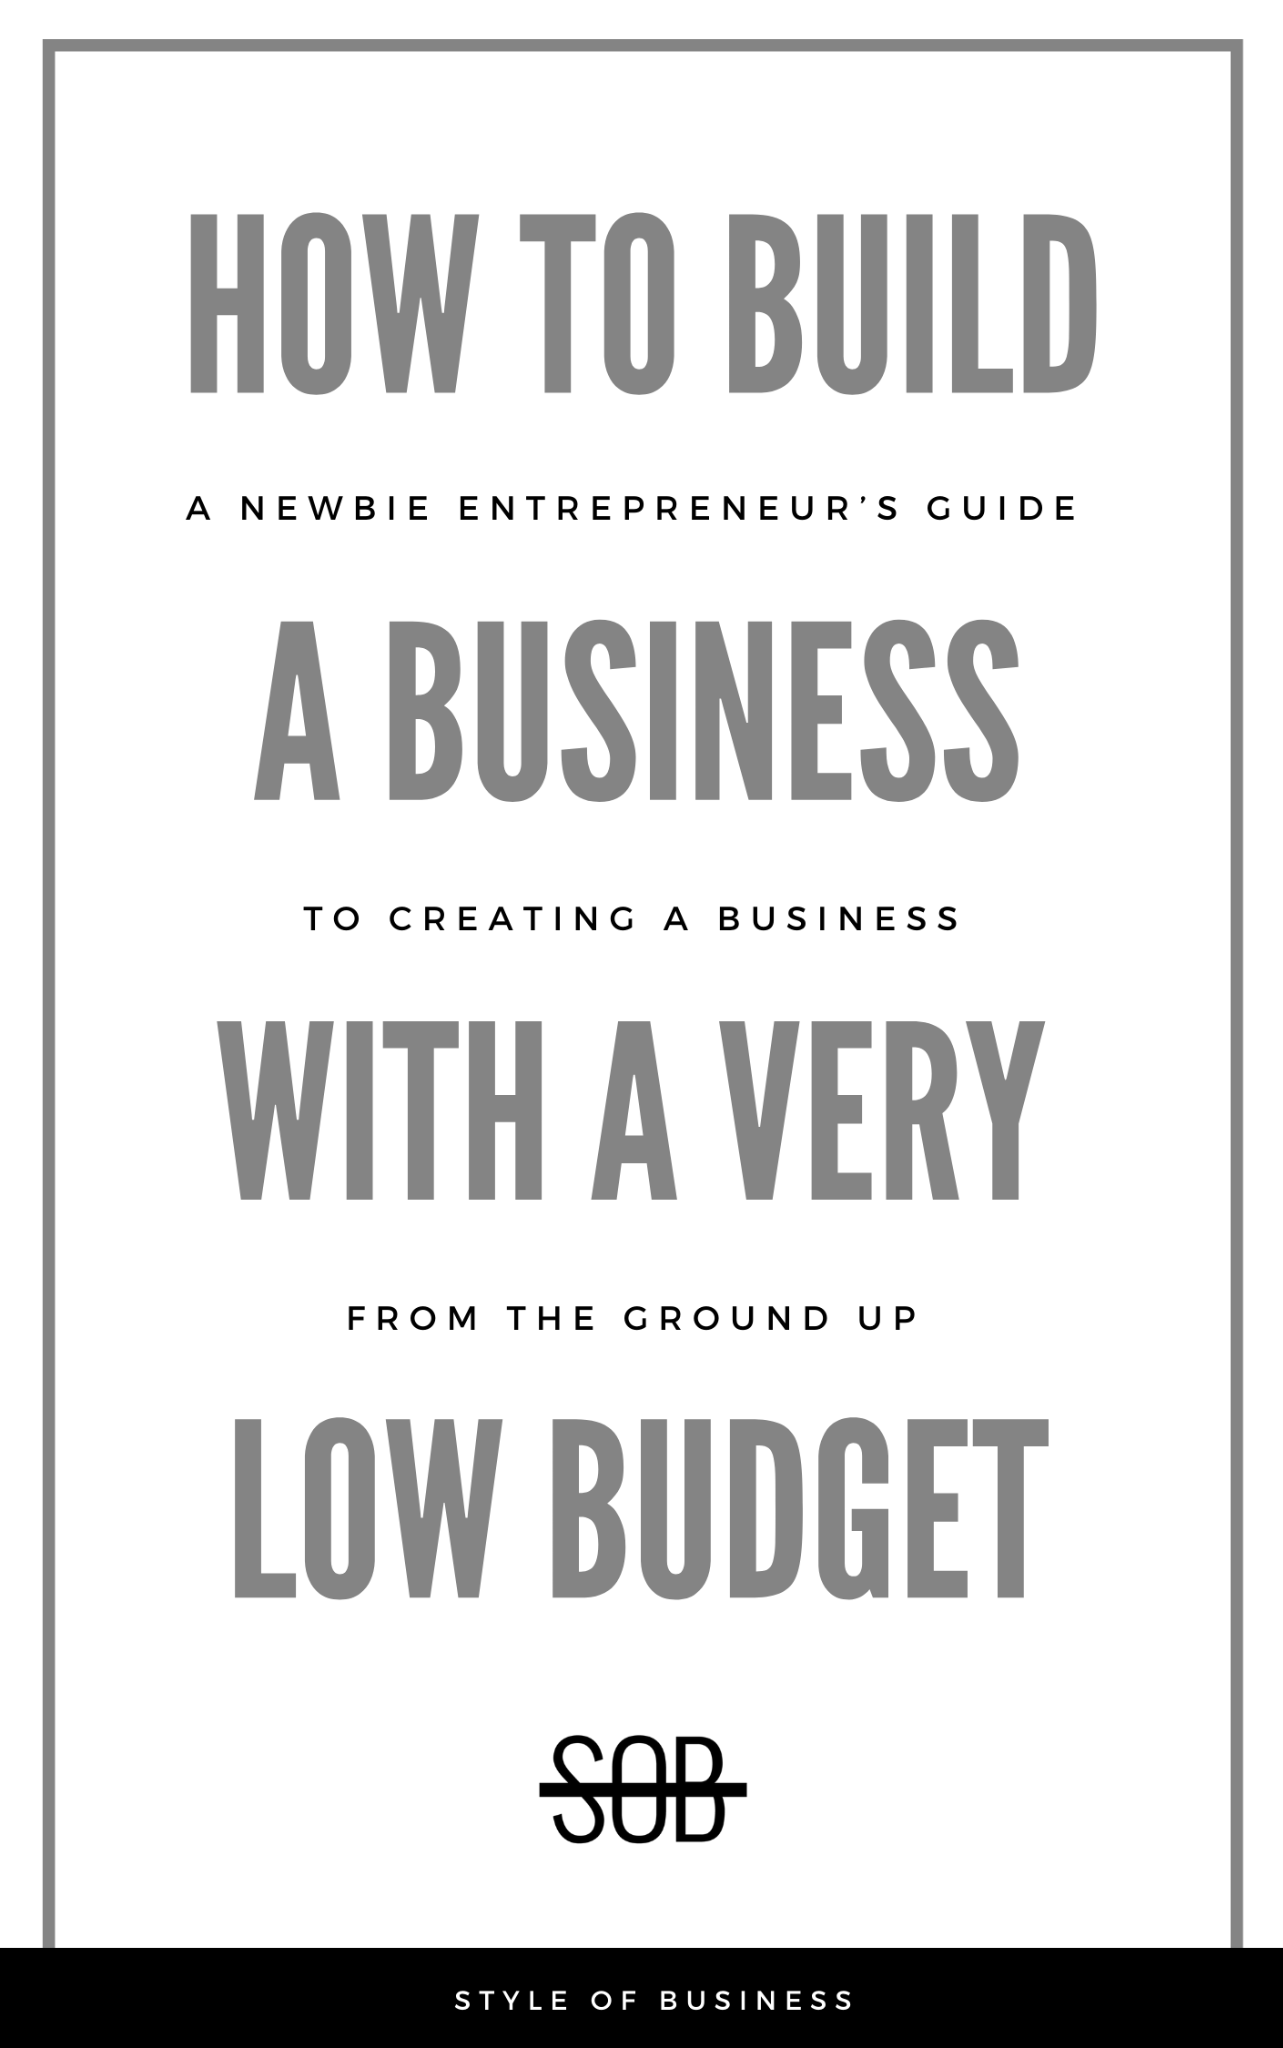 How to Build a Business with a Very Low Budget